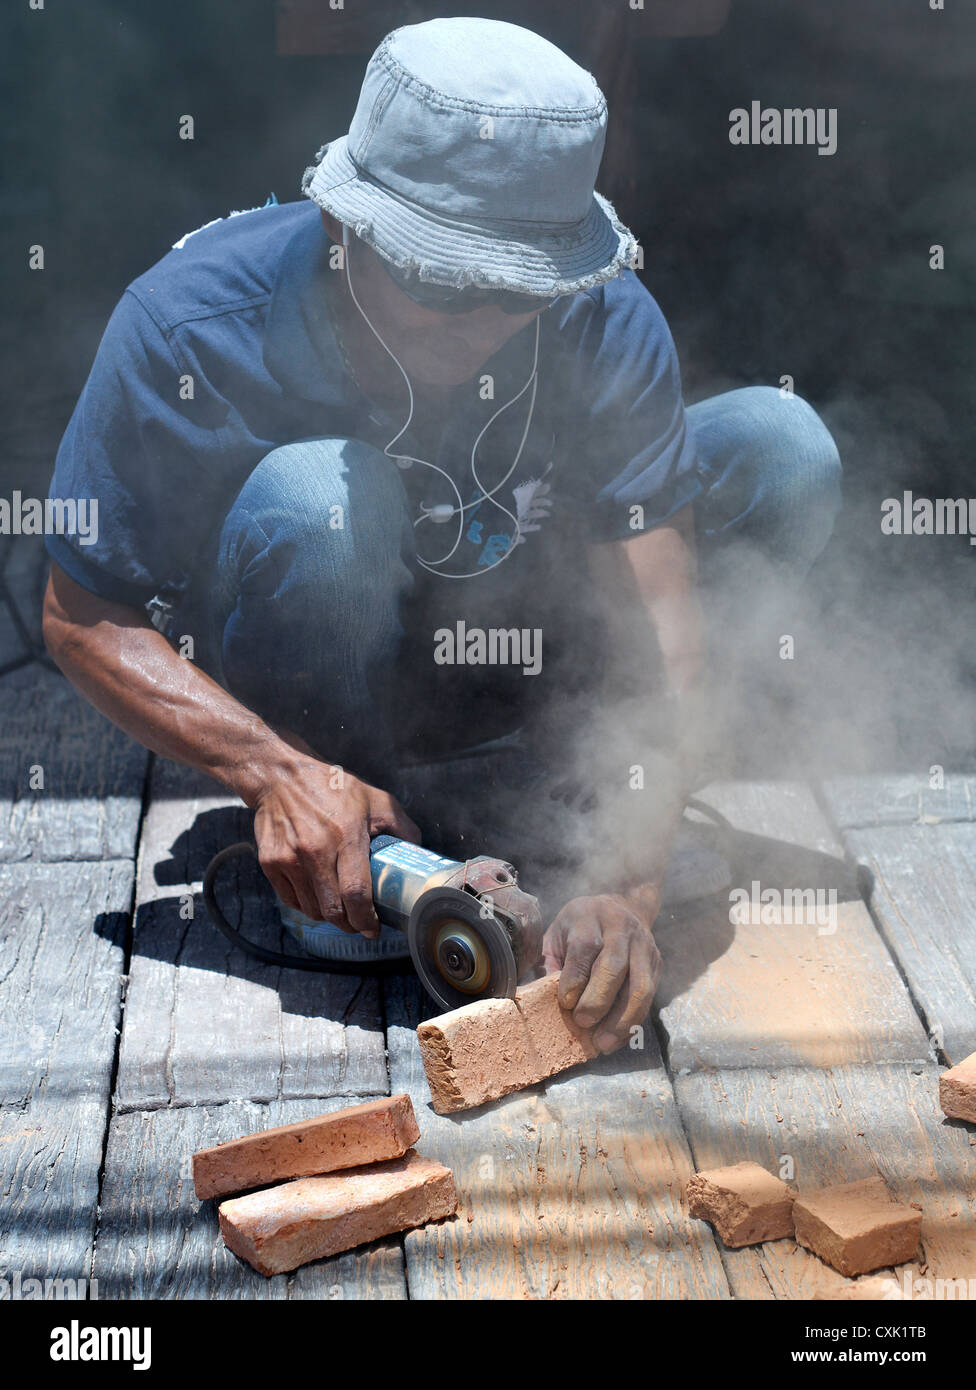 Builder using a hand powered angle grinder to cut bricks. Thailand S.E. Asia Stock Photo